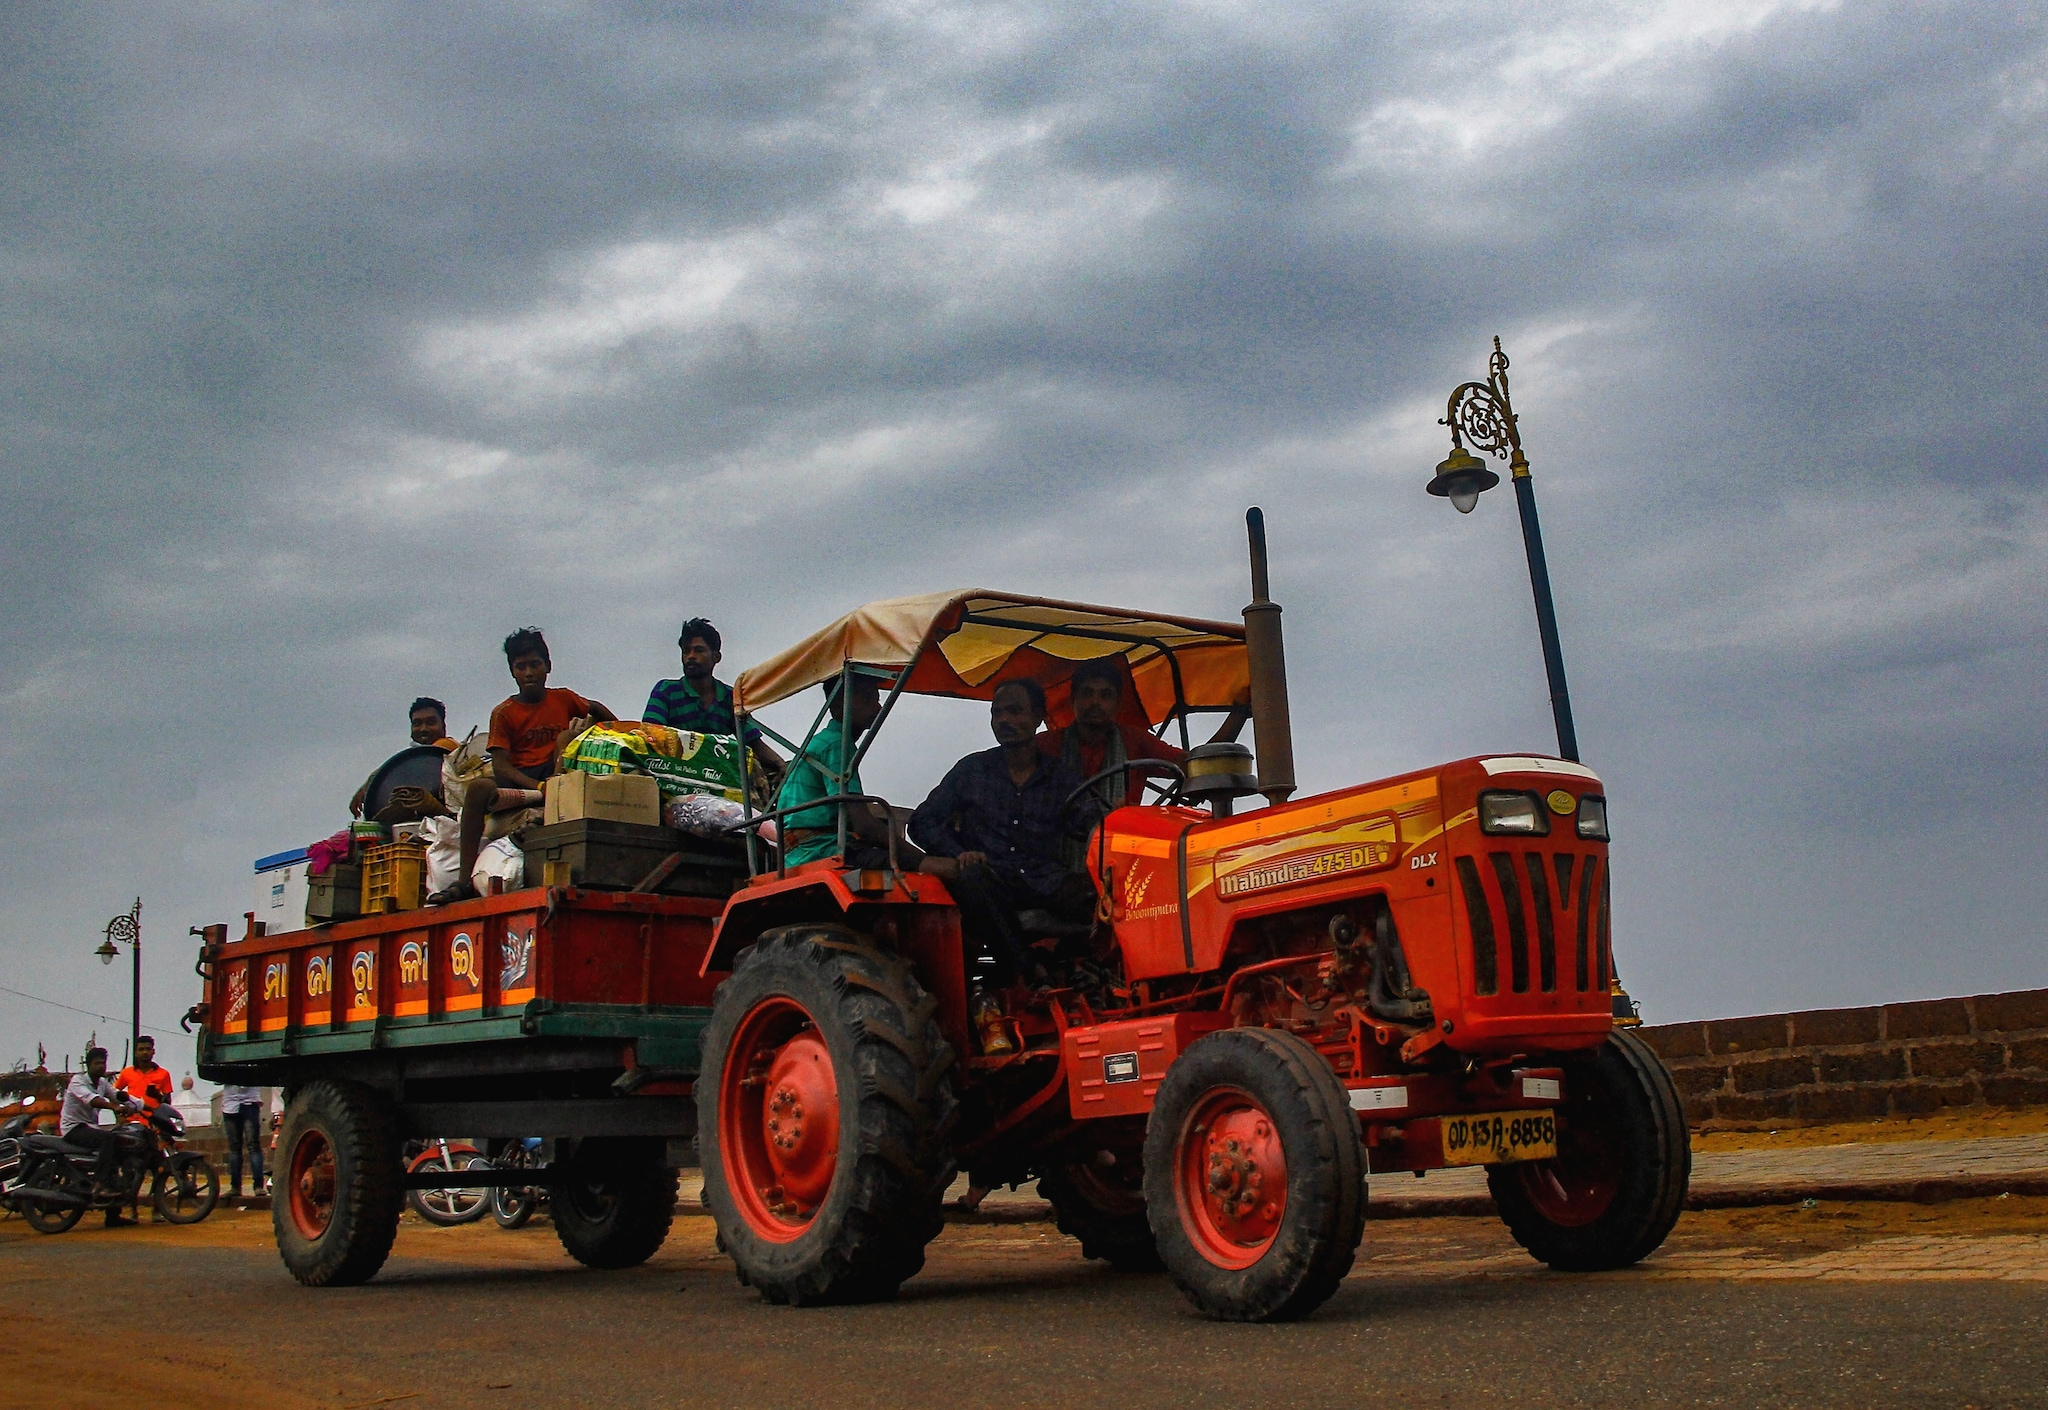 Villagers on their way to a shelter house on a tractor following evacuations as part of emergency measures taken before Cyclone Fani makes landfall, in Puri, Thursday, May 2, 2019. (PTI Photo)